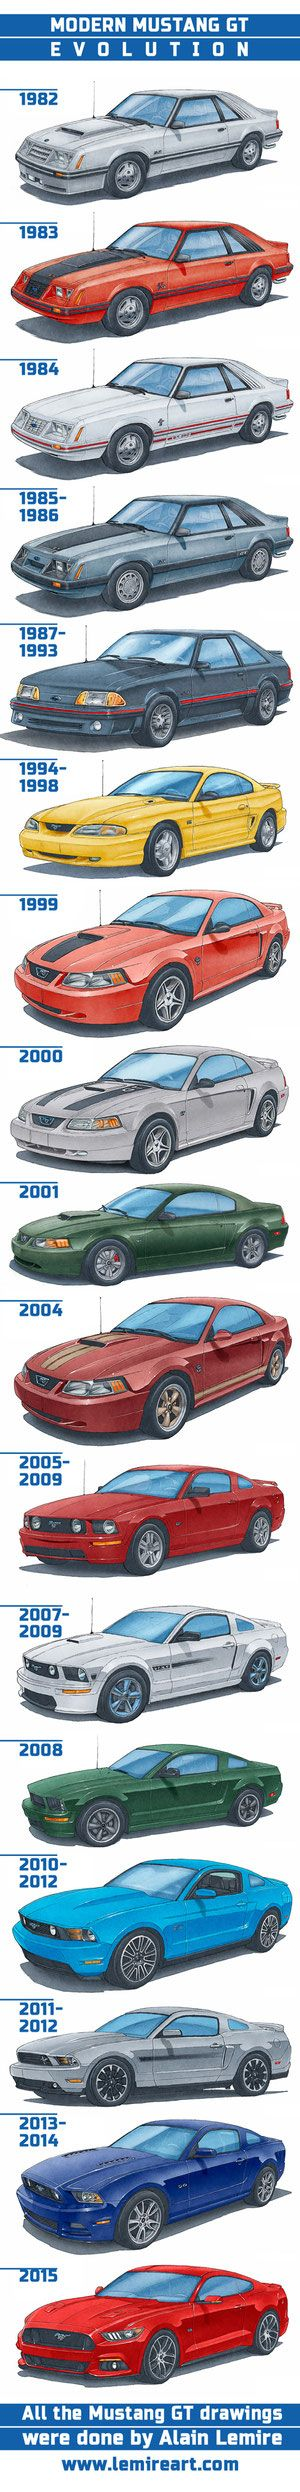 900 Mustangs And Shelbys Ideas Mustang Ford Mustang Mustang Cars